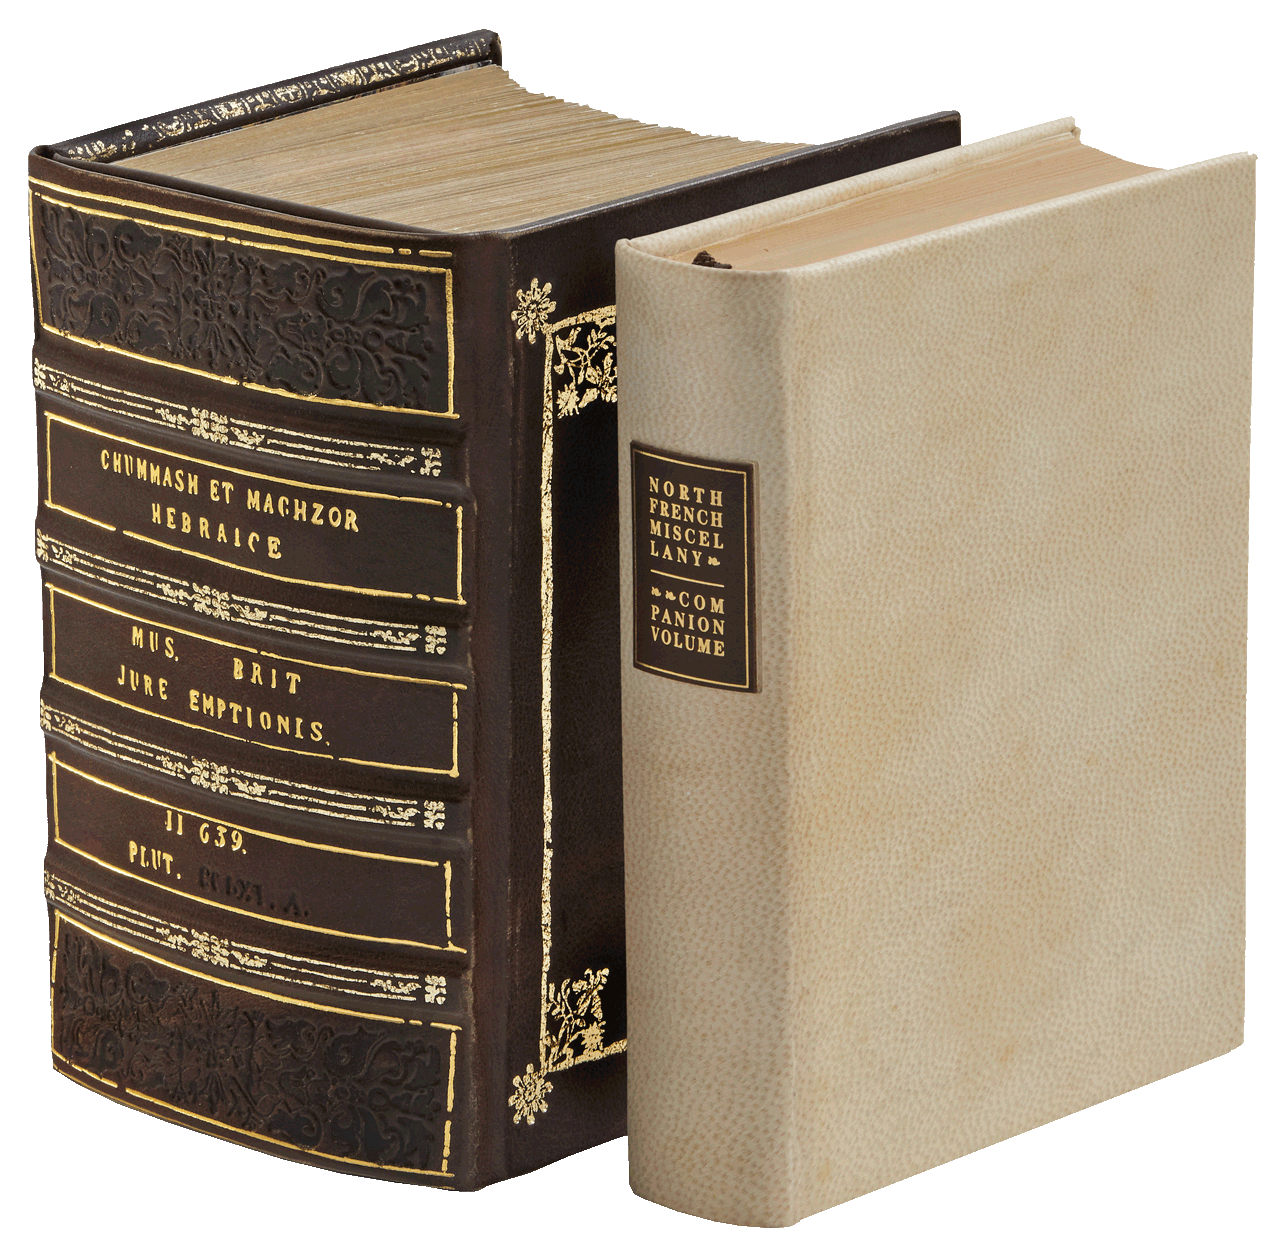 """The facsimile and commentary volume. <small><a href=""""https://www.facsimile-editions.com/copyright/"""">© Copyright 2021 Facsimile Editions Ltd</a></small>"""